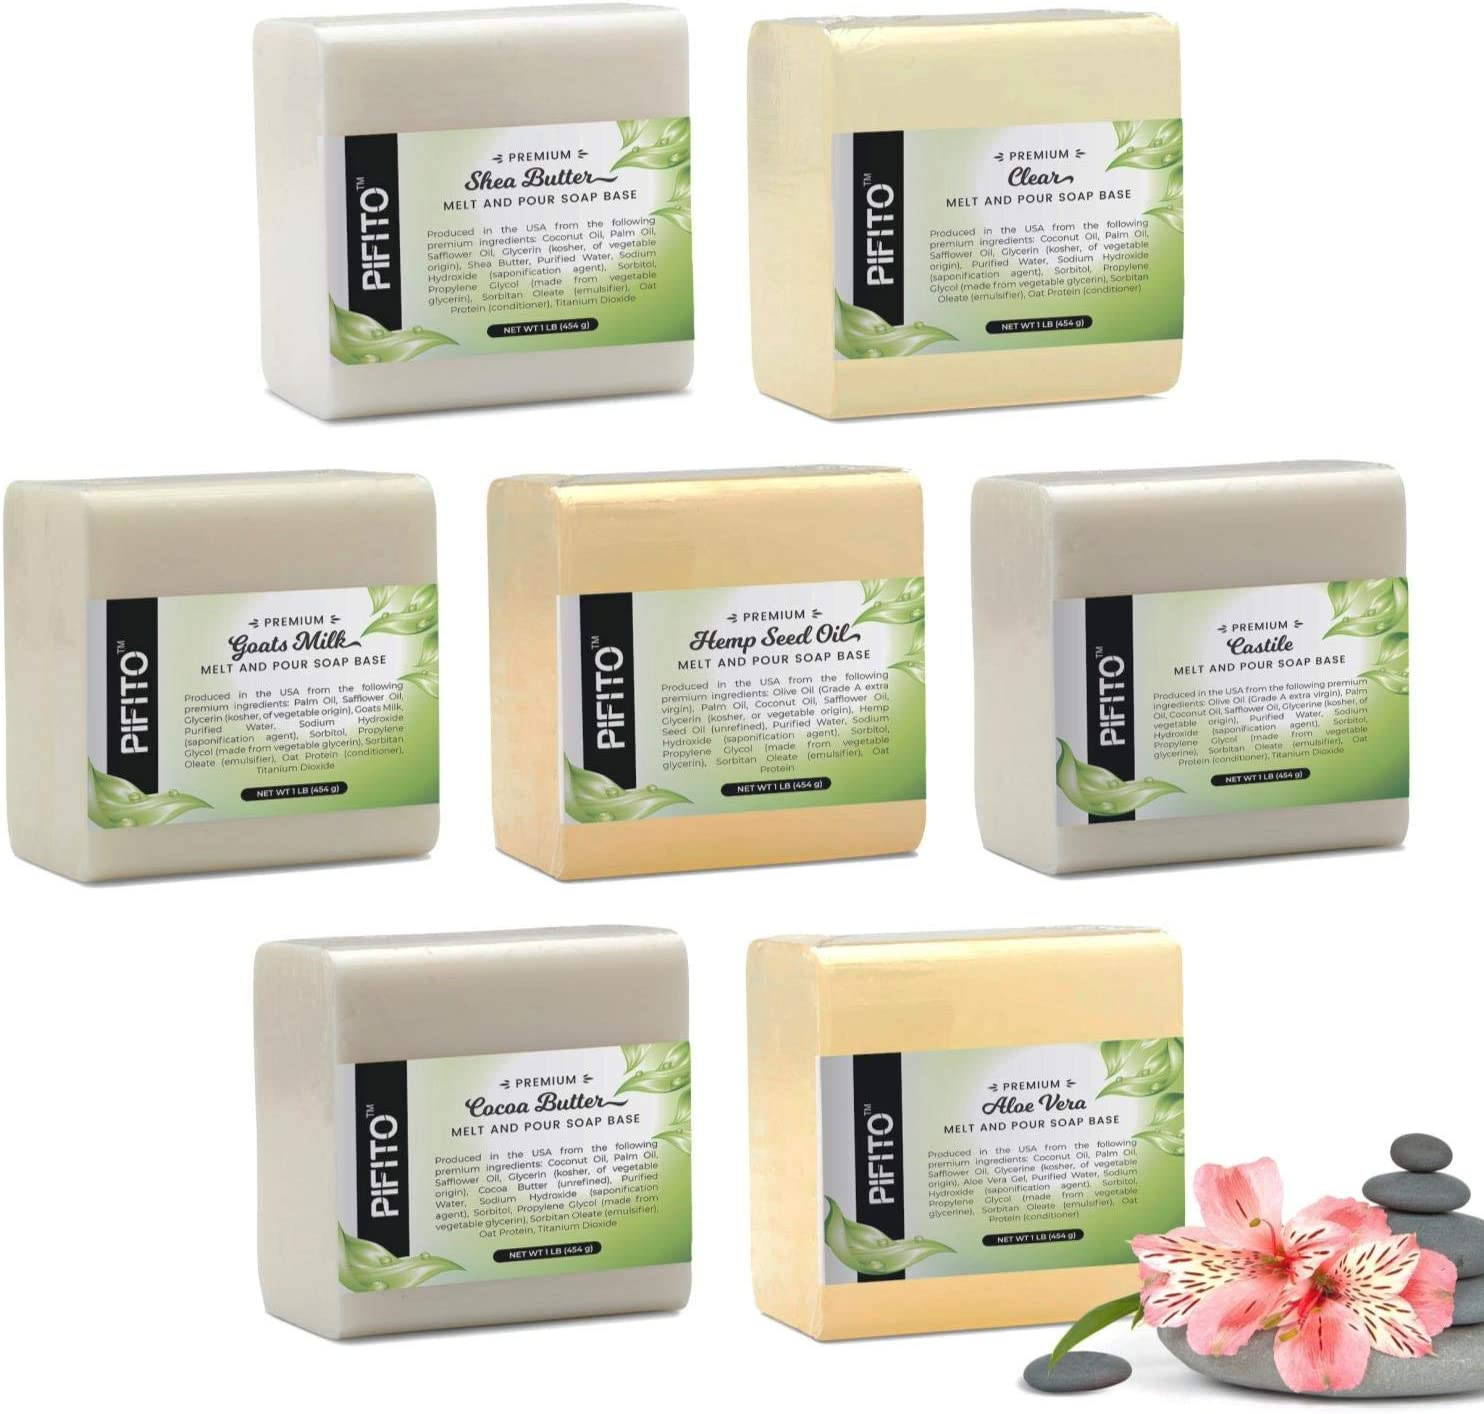 Pifito Melt and Pour Soap Base Sampler (7 lbs) │ Assortment of 7 Bases (1lb ea) │ Hemp Seed Oil, Clear, Aloe Vera, Goats Milk, Cocoa Butter, Shea Butter, Castile │ Glycerin Soap Making Supplies: Arts, Crafts & Sewing